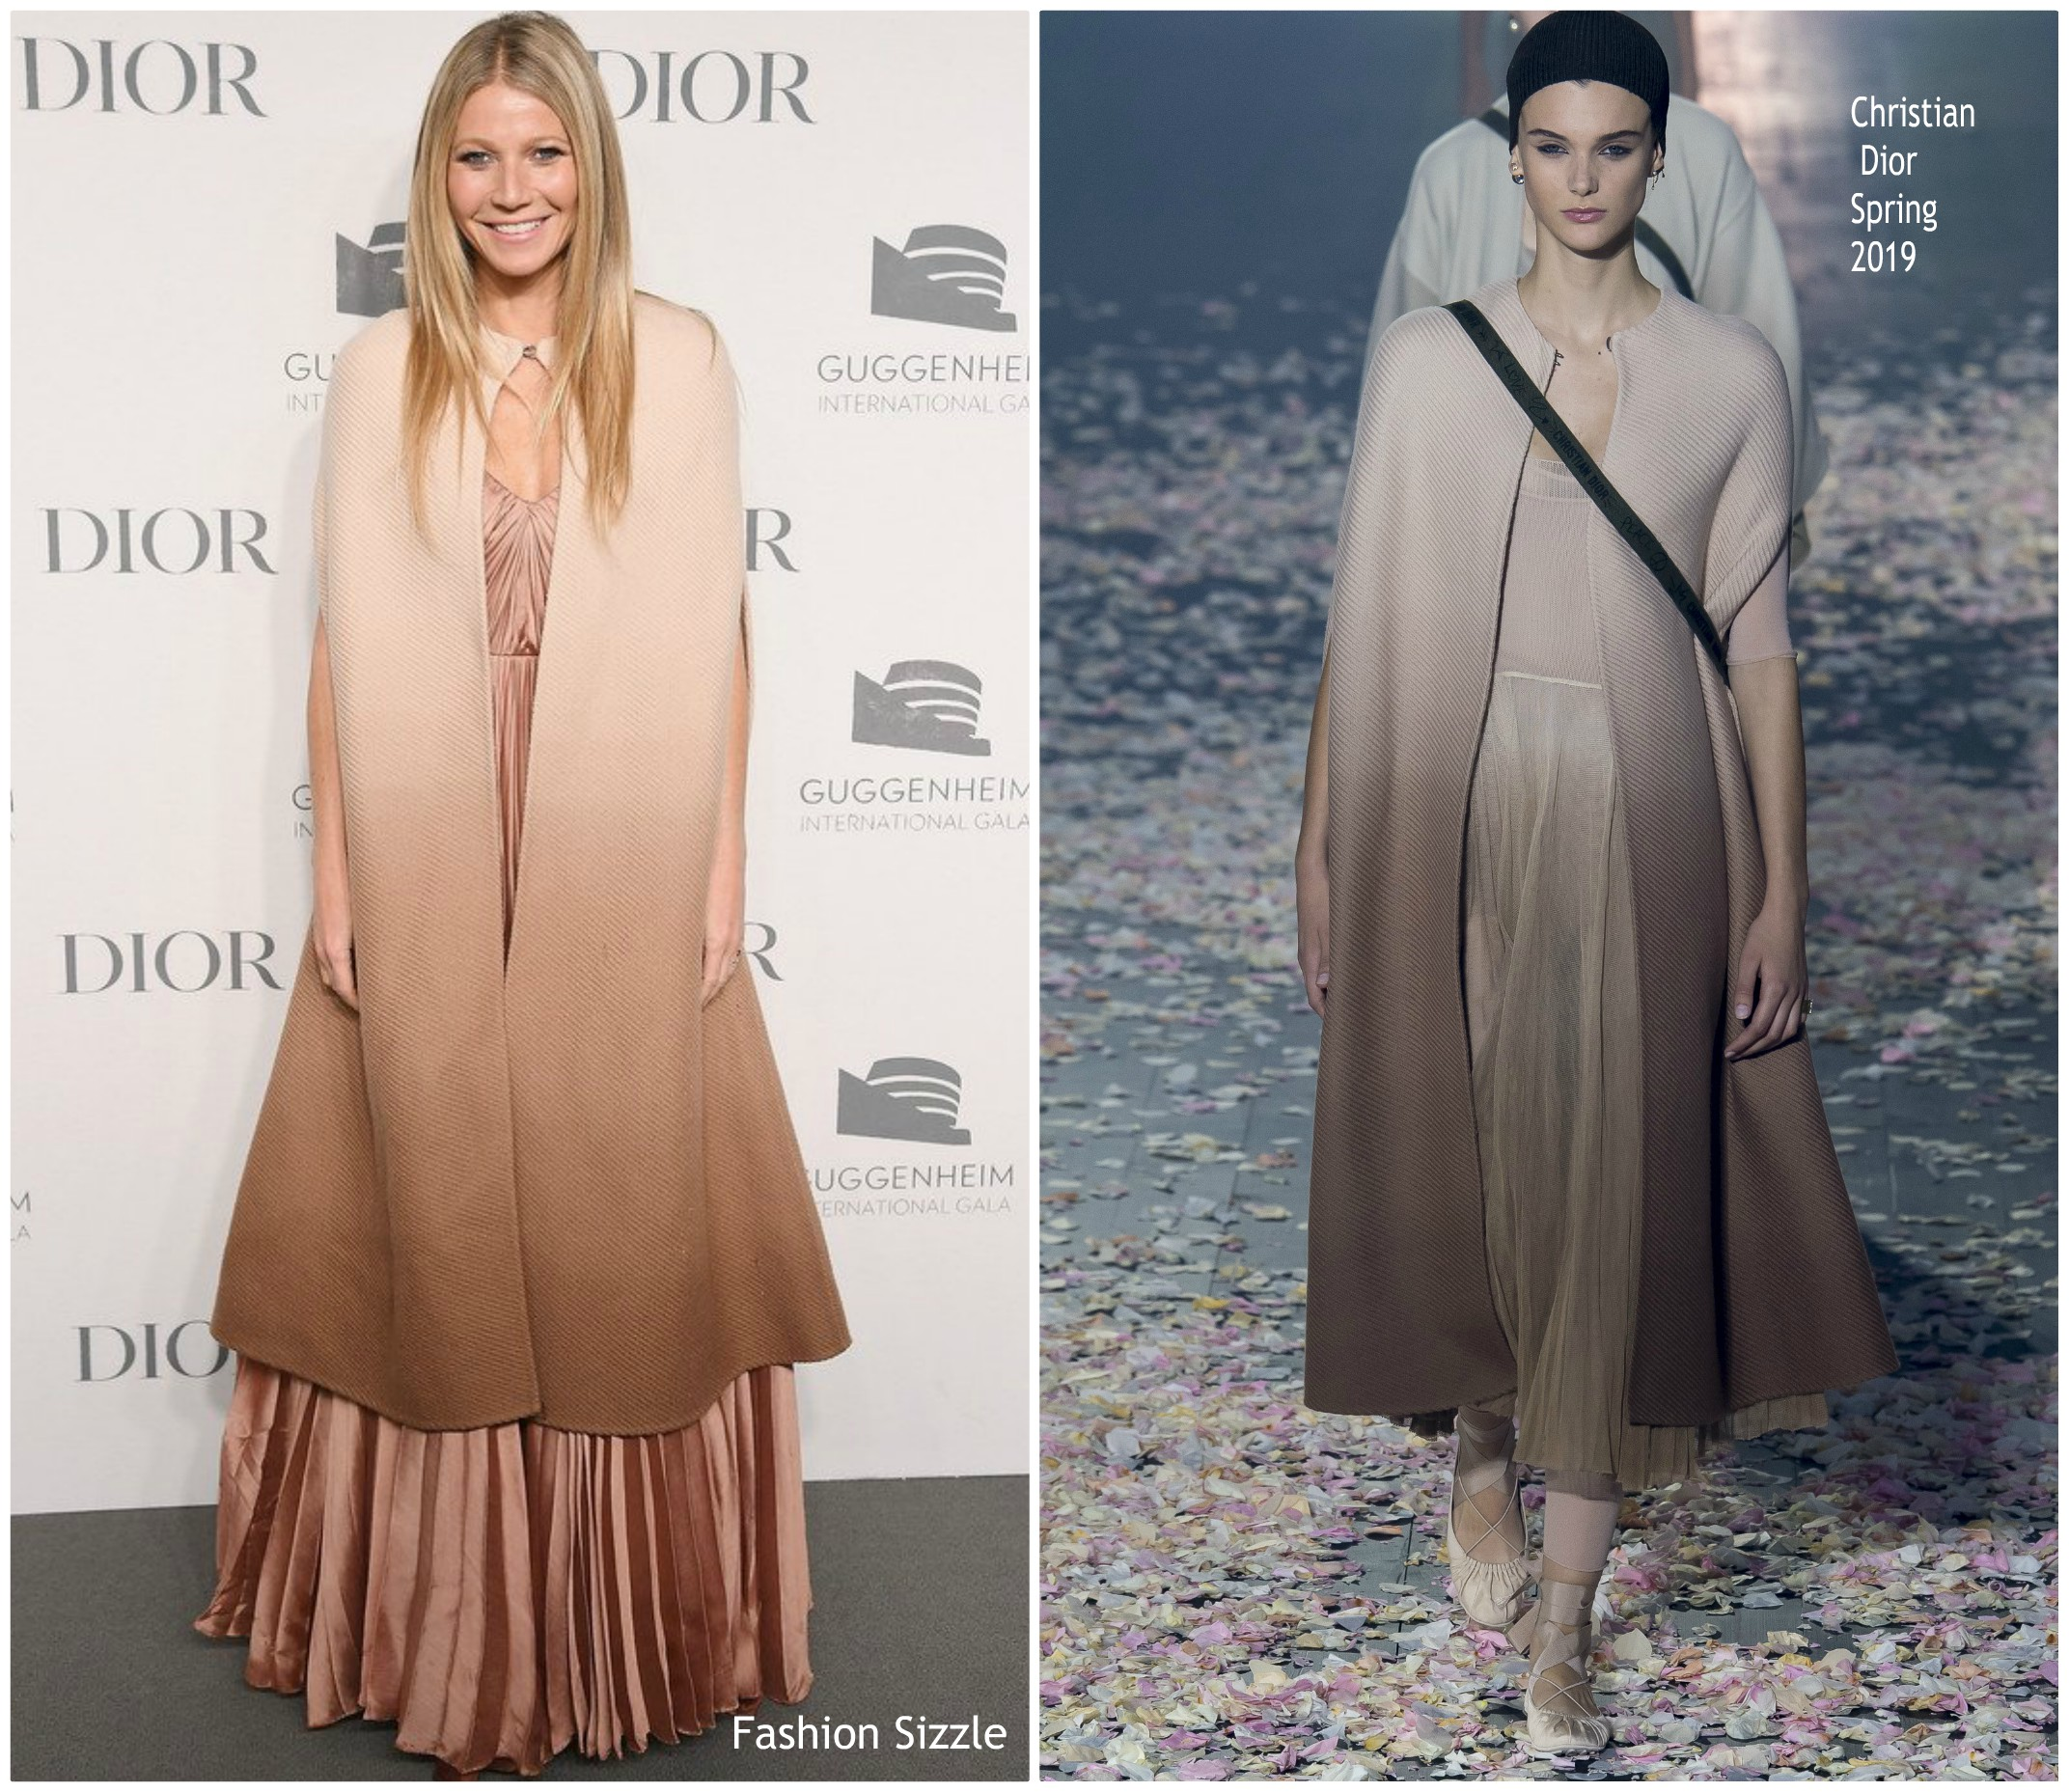 gwyneth-paltrow-in-christian-dior-haute-couture-guggenheim-international-gala